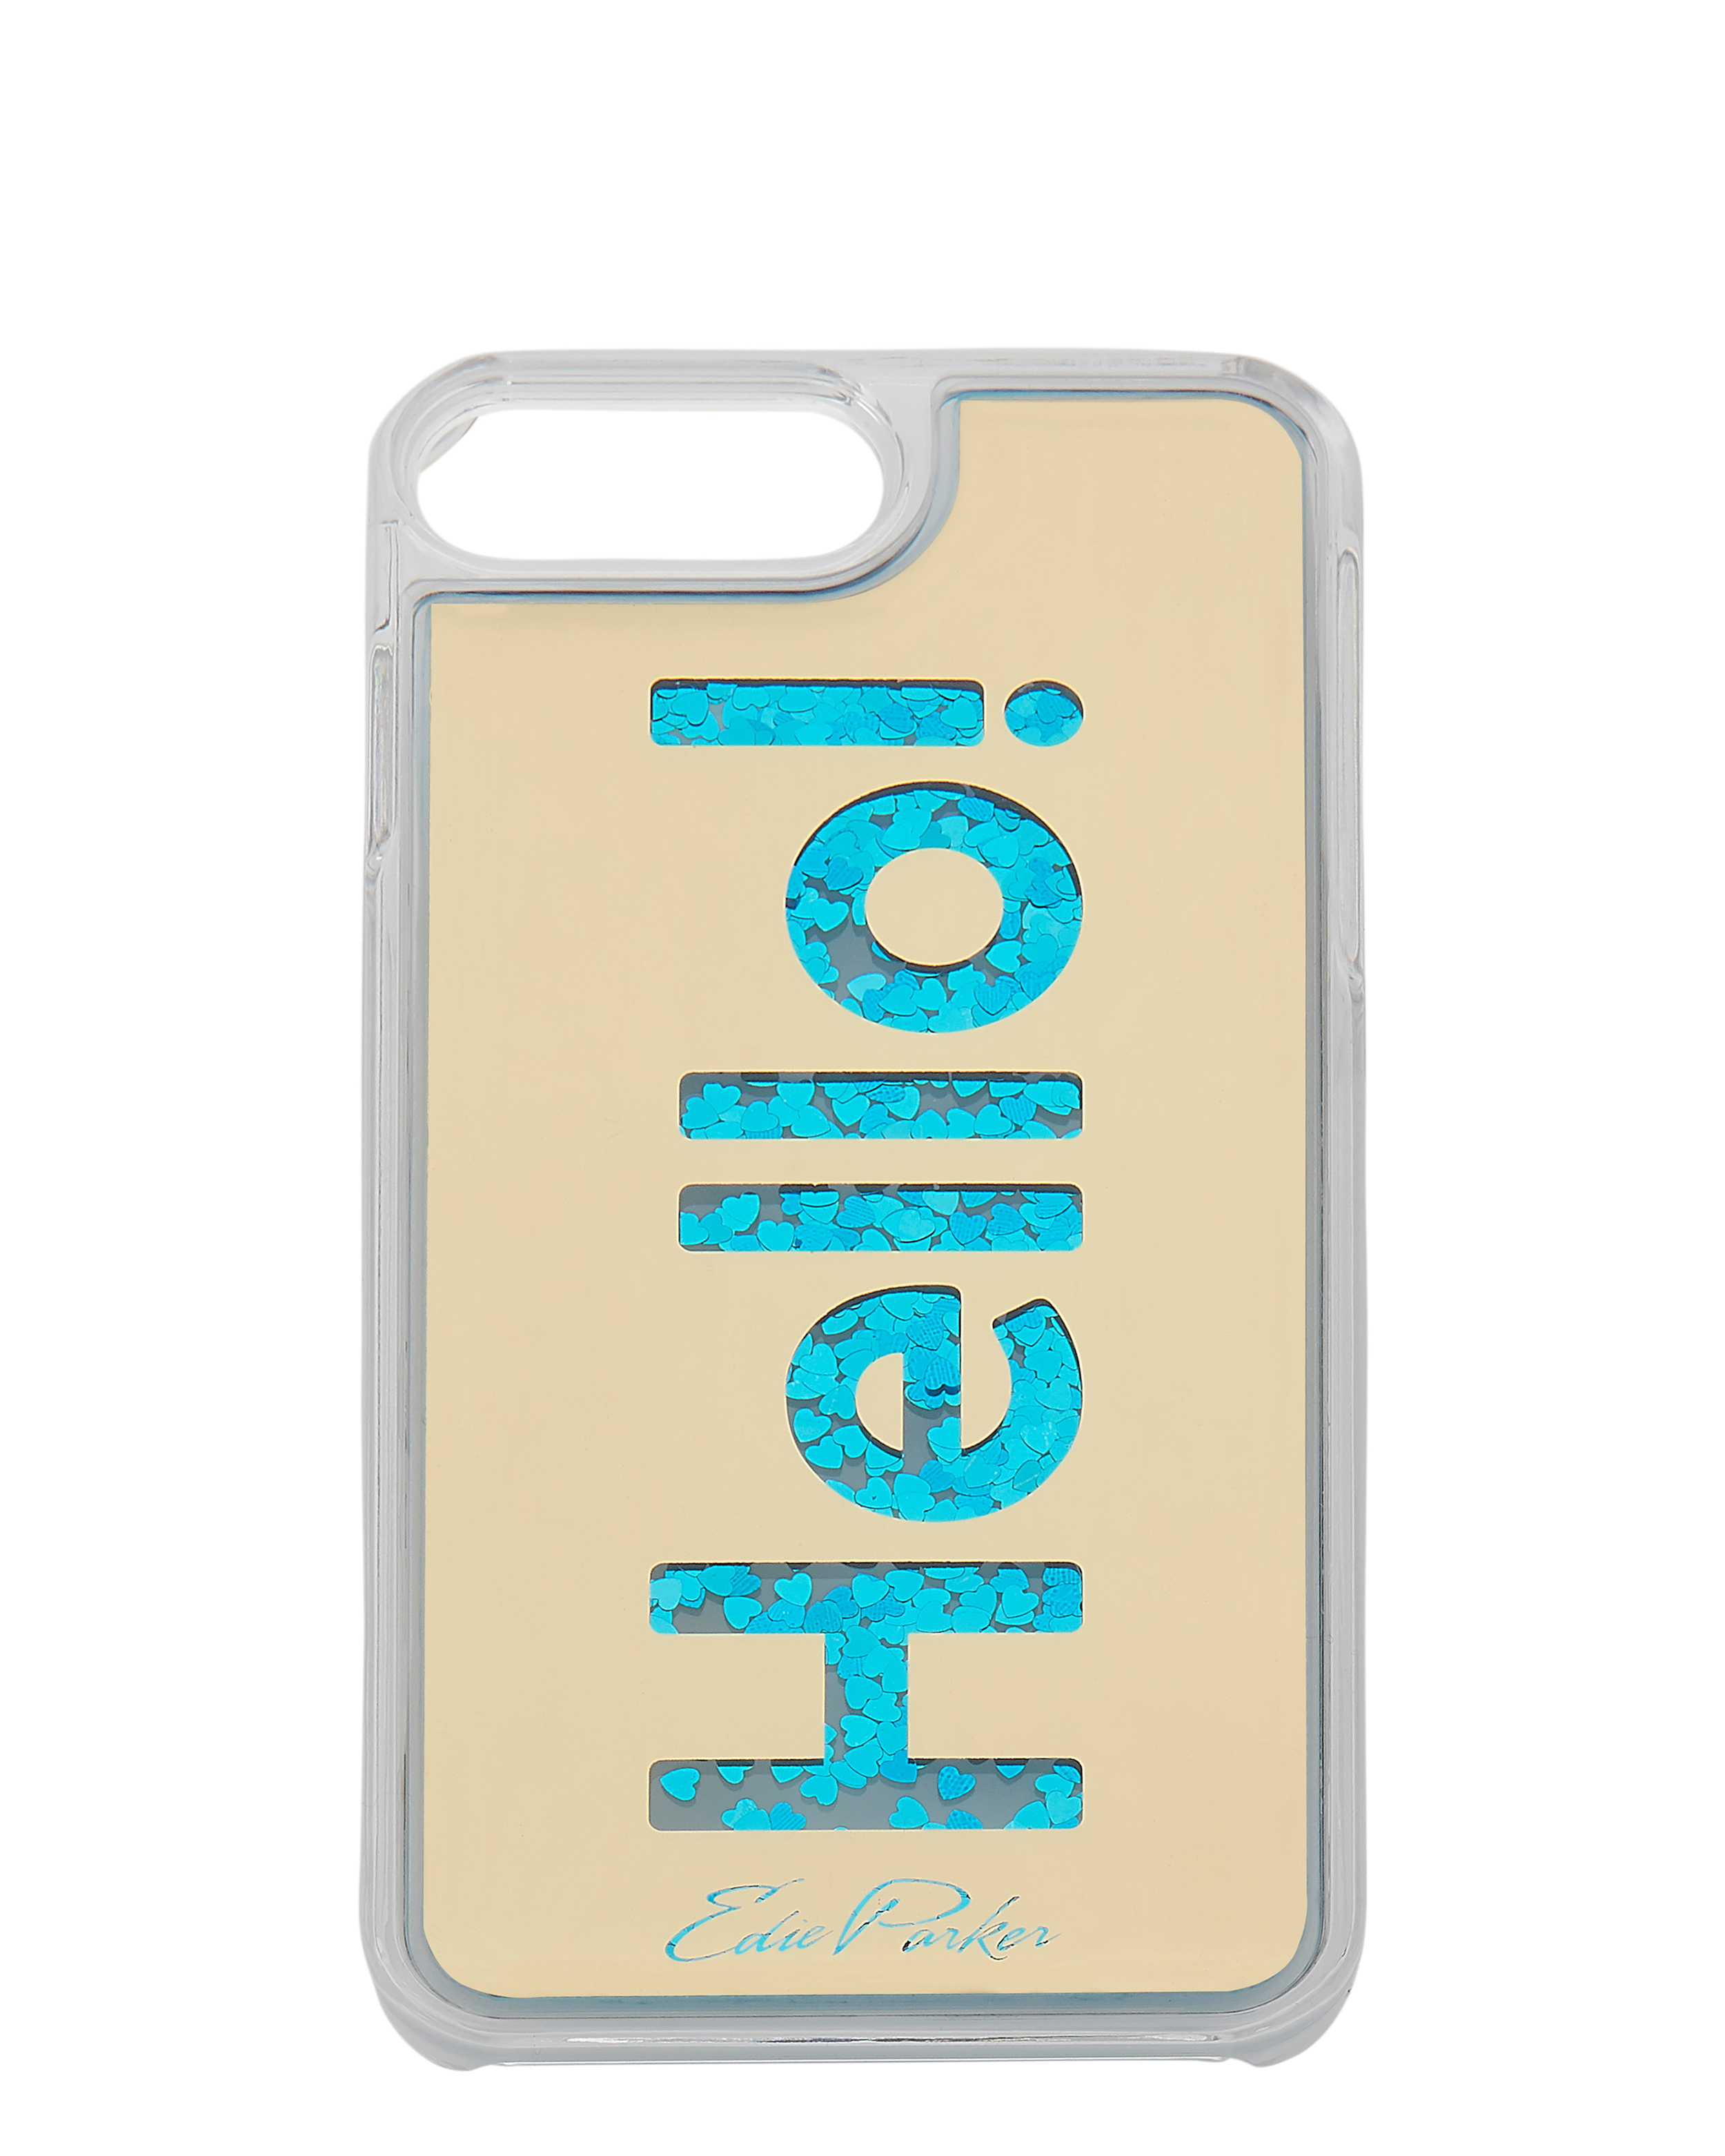 Edie Parker Blue Floating Hello iPhone 6 or 7 Plus Case